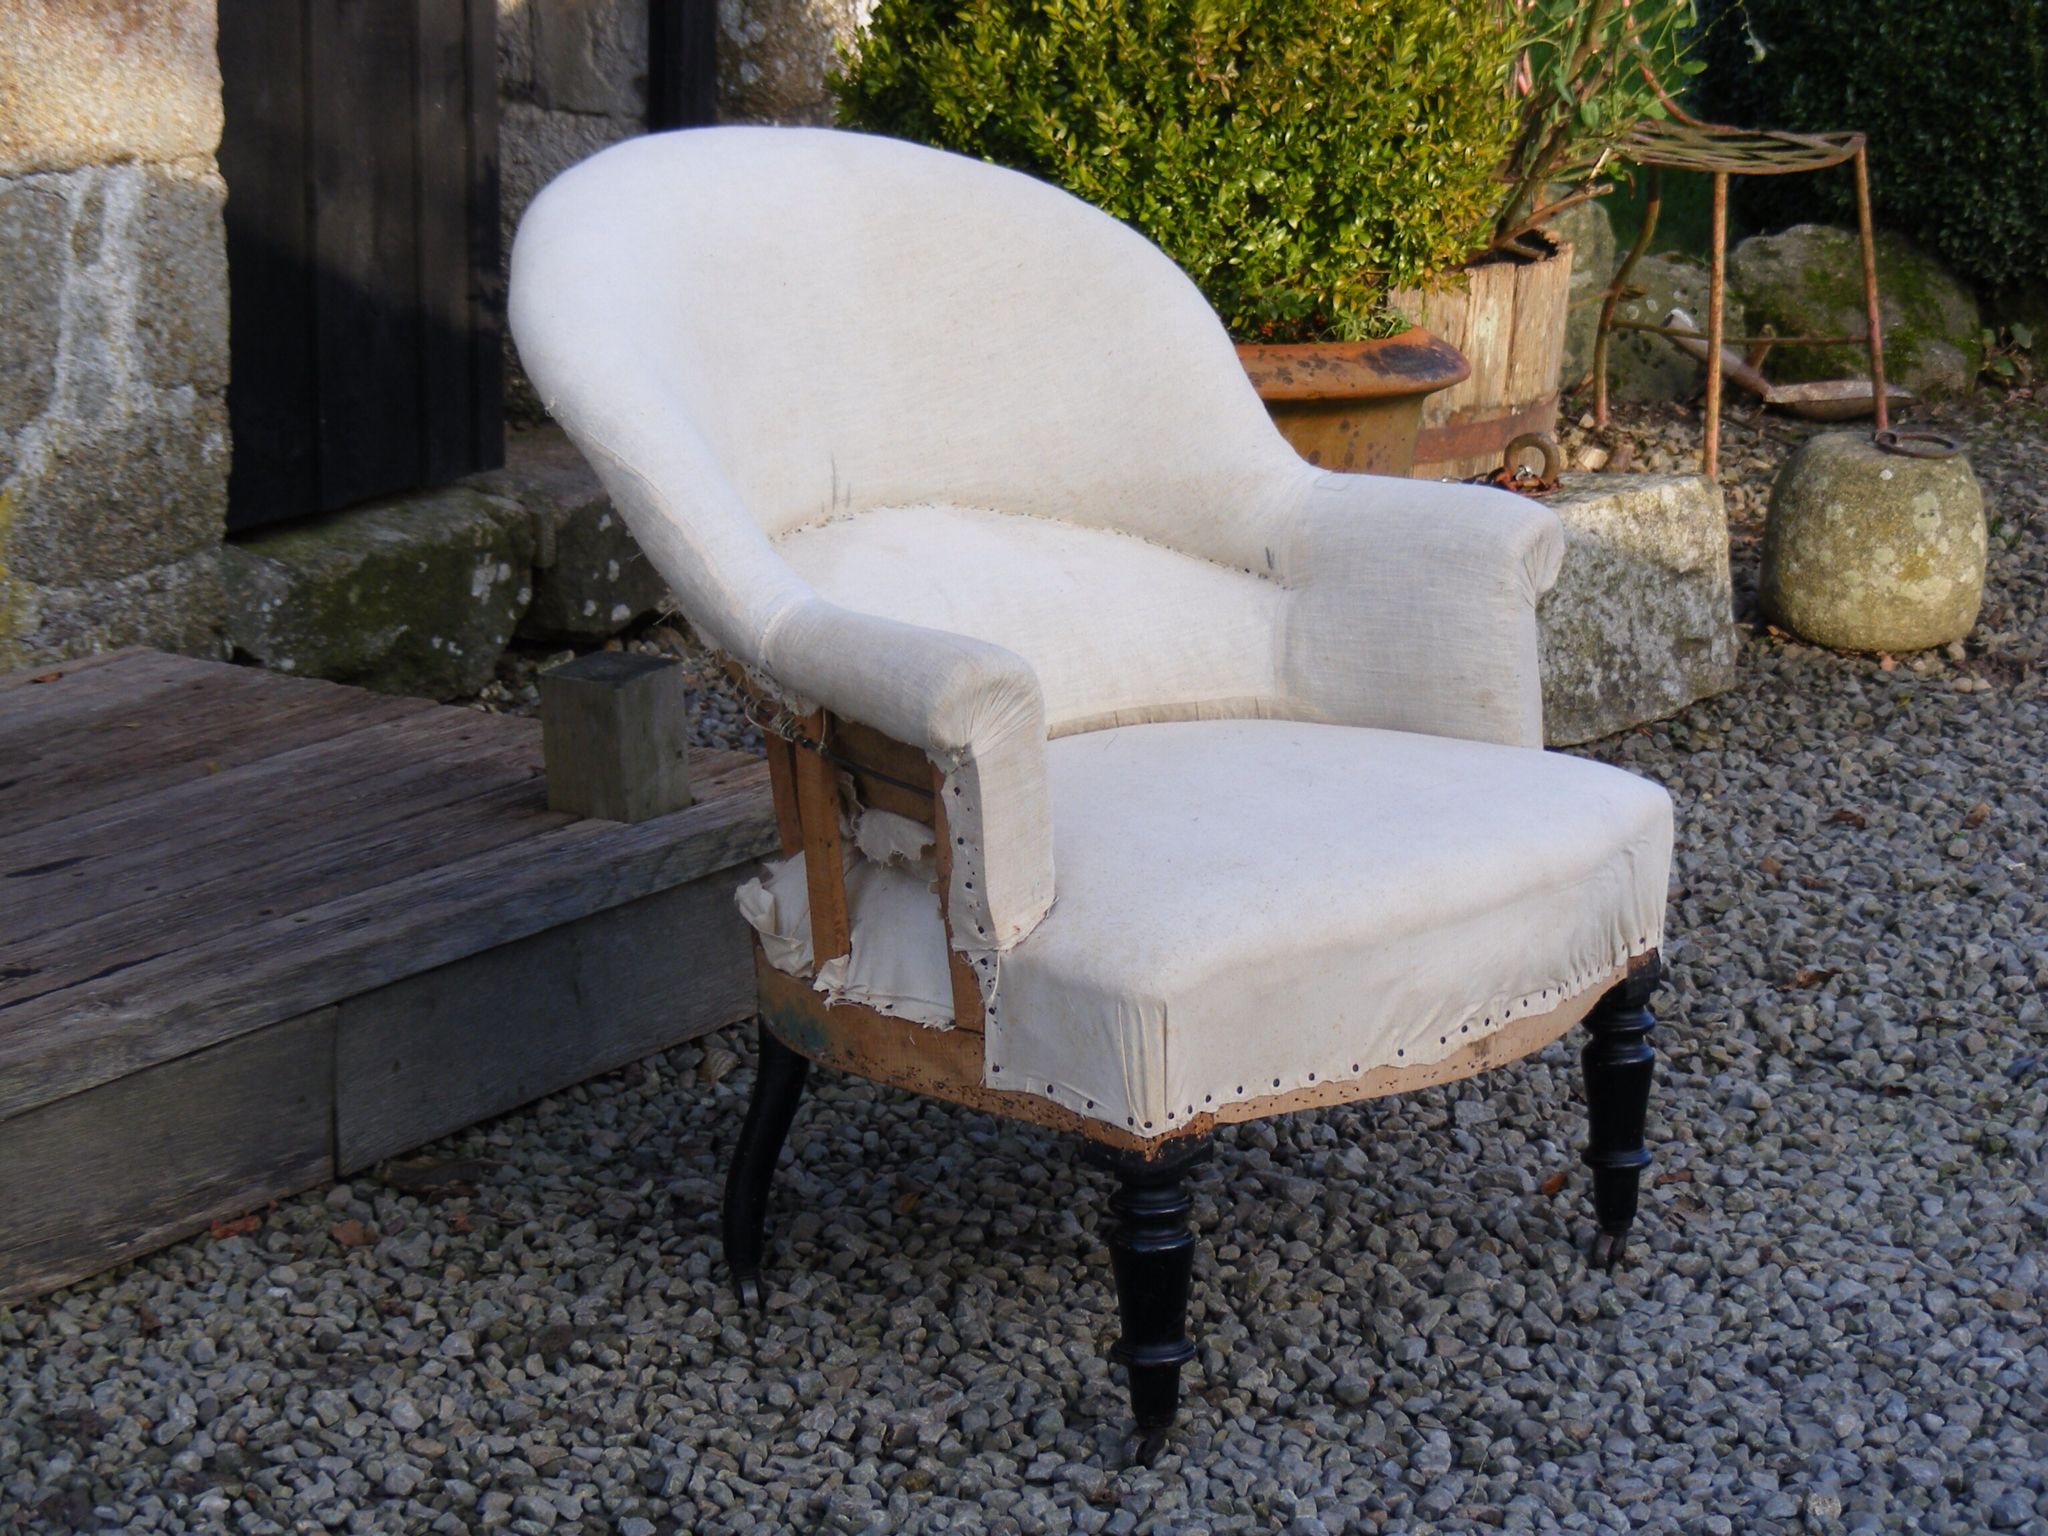 An Early To Mid 19th Century Tub Chair Covered In Calico With Casters.  Height   81cm Width   72cm Depth Of Seat   47cm. SOLD